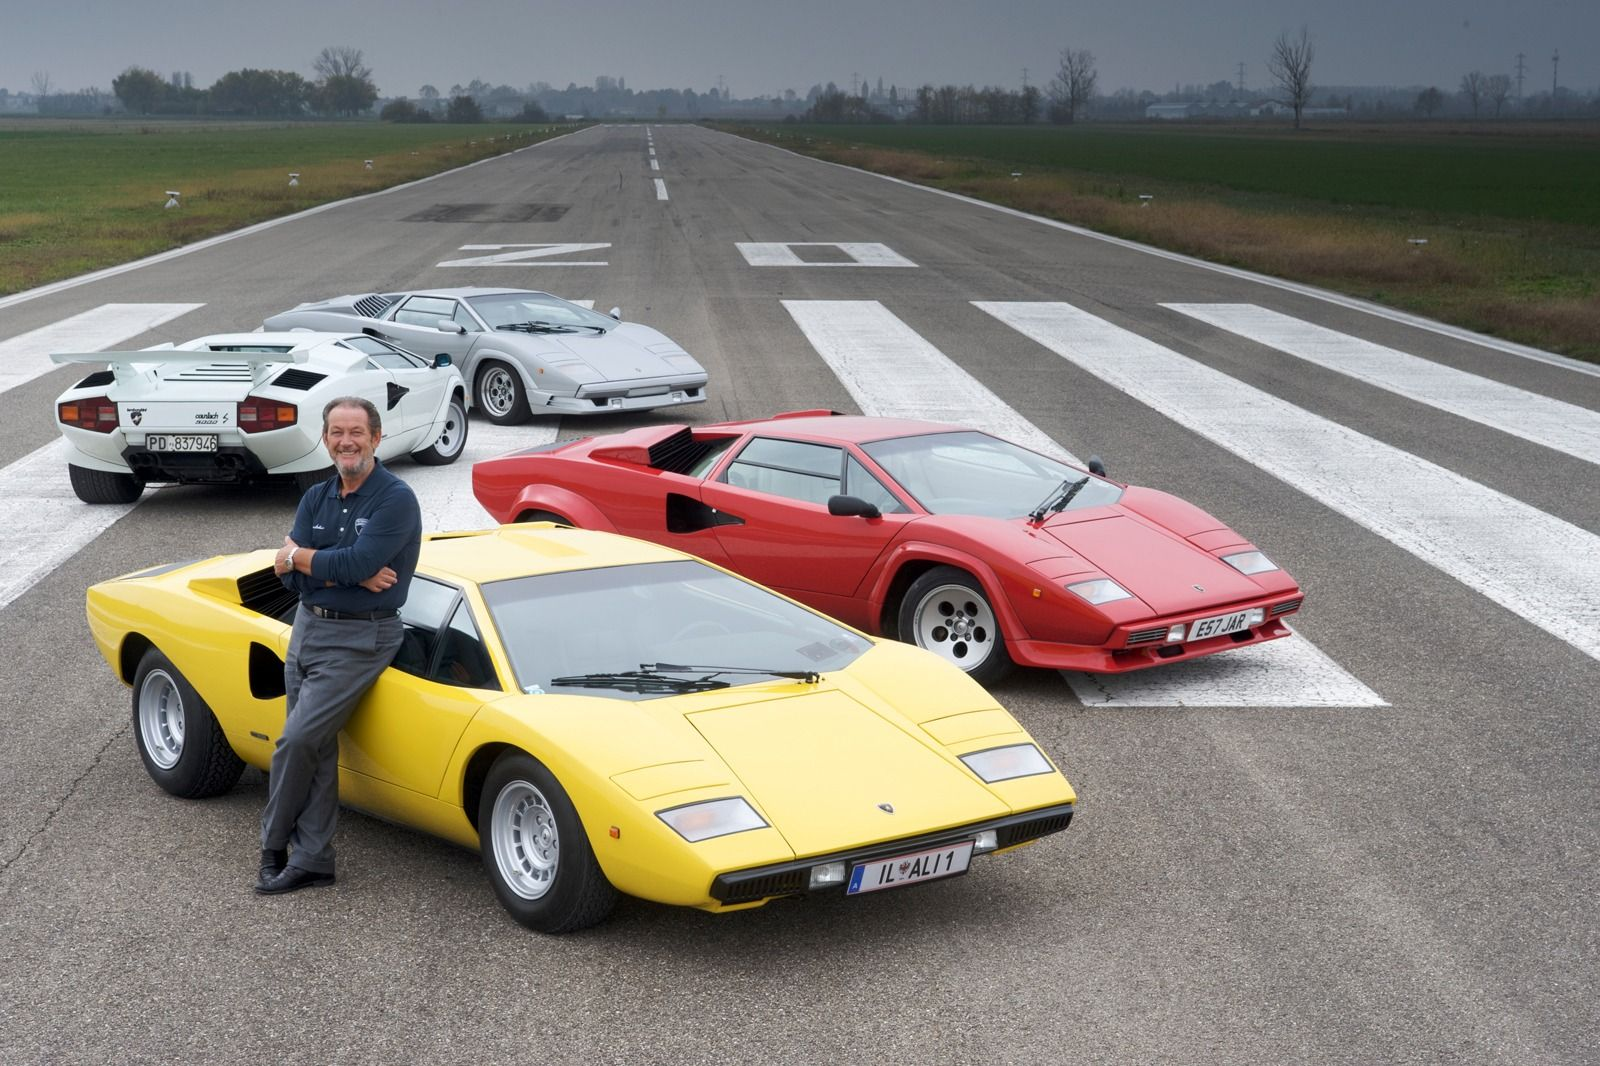 Valentino Balboni One Of The Best Drivers In The World With One Of The Best Jobs Ever Lamborghini Countach Valentino Balboni Lamborghini